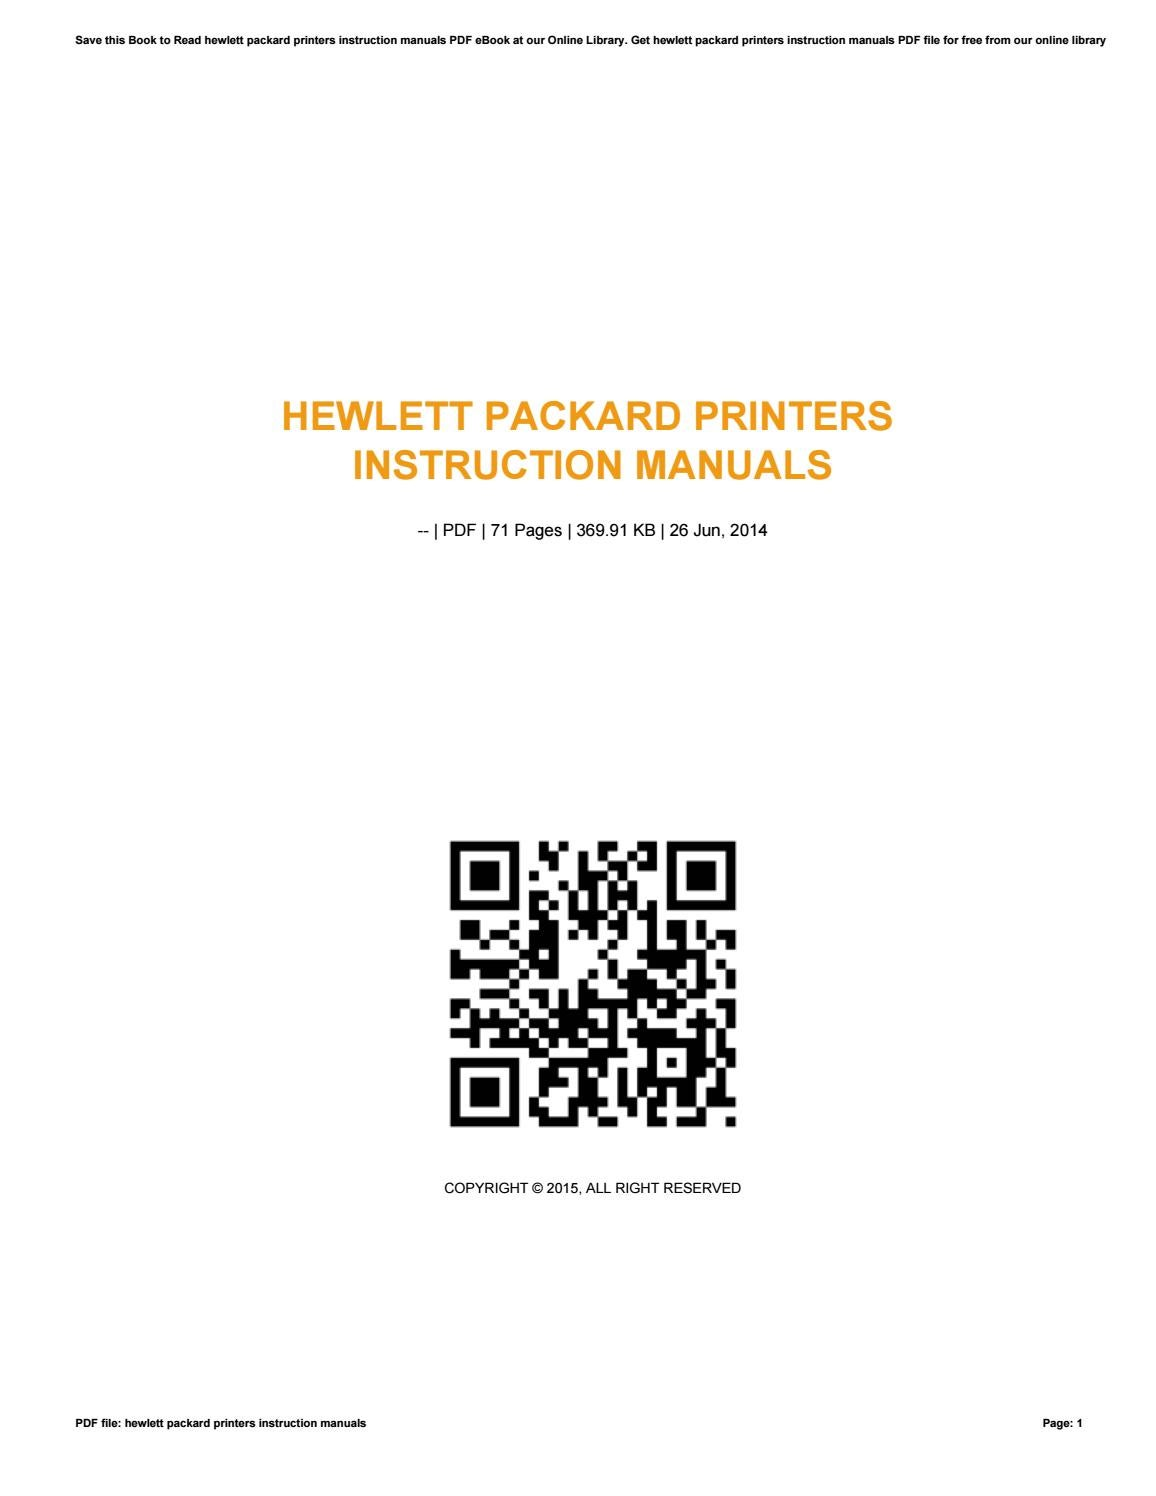 hp 1100 hplc manual ebook